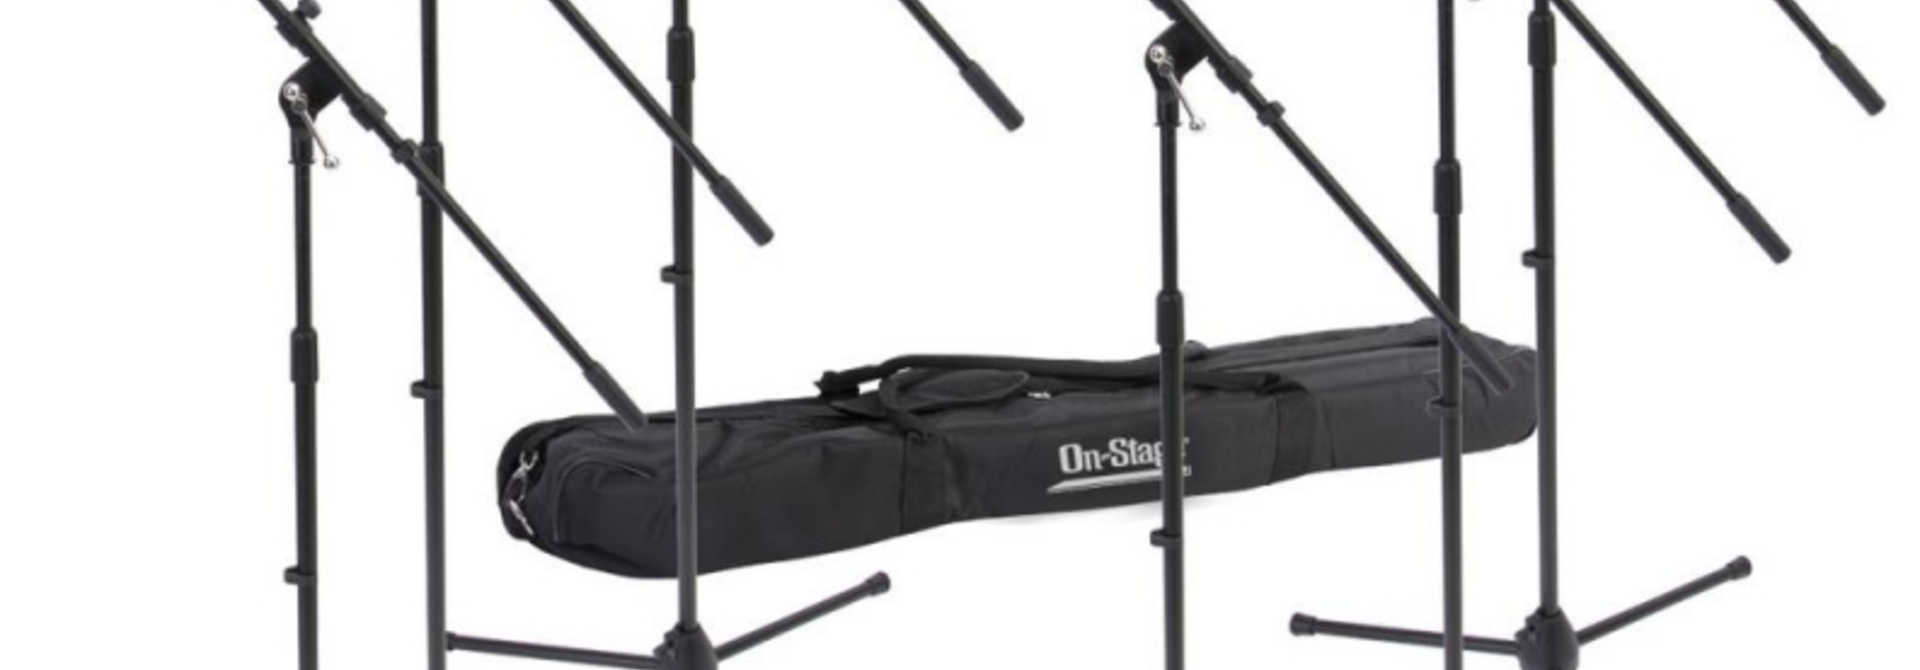 On-Stage Euro Boom Microphone Stand 6-Pack w/ Bag MSP7706